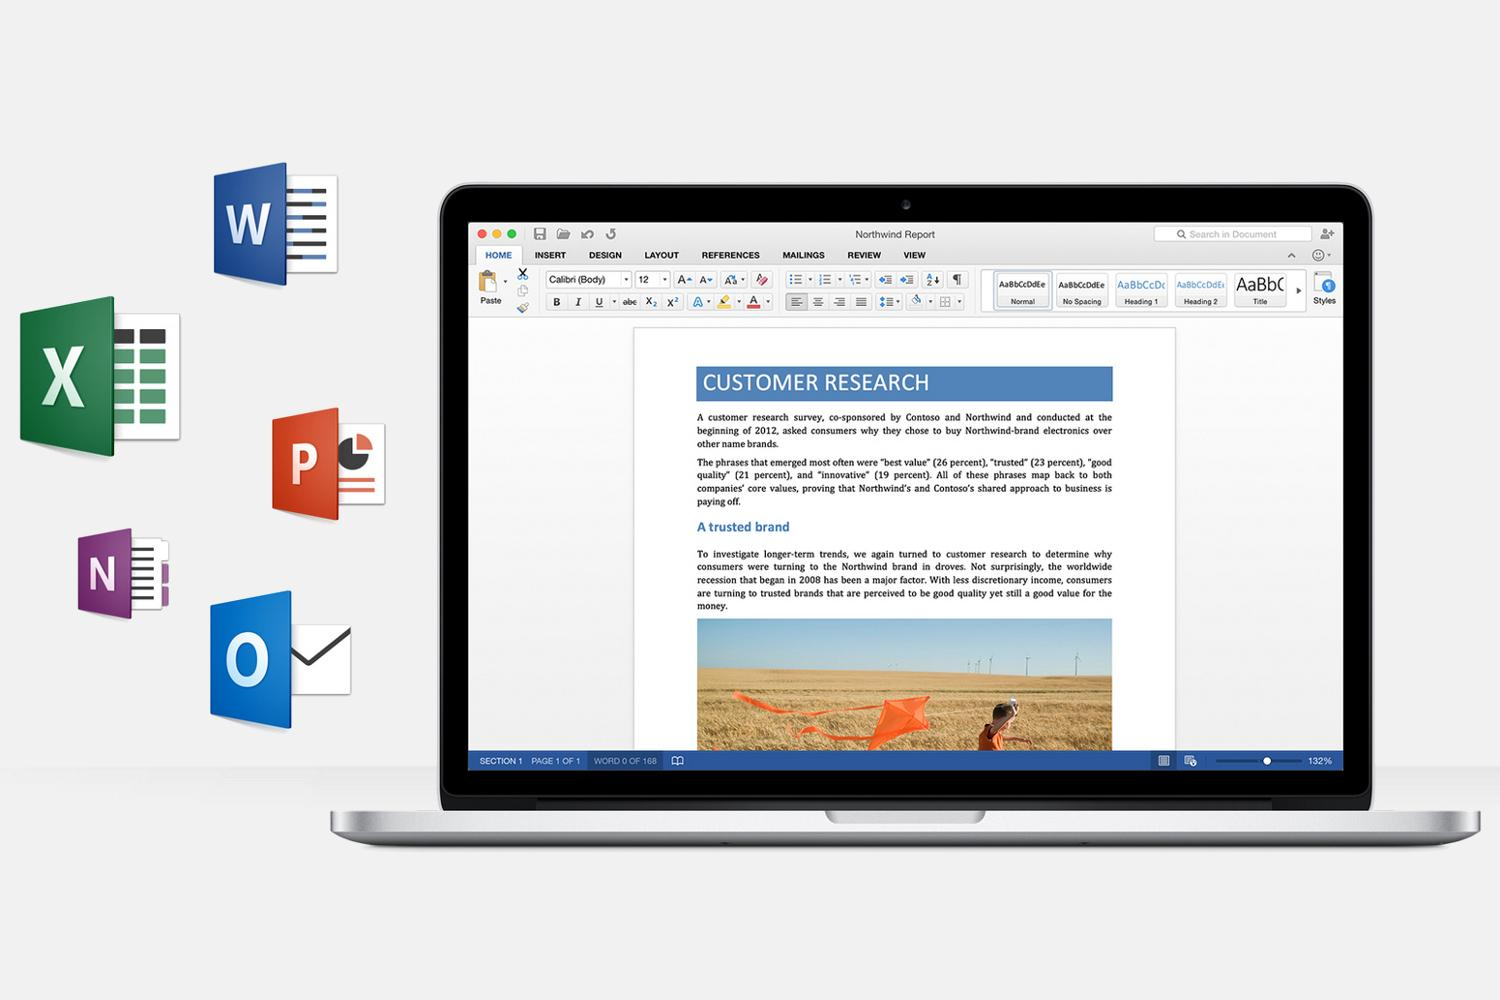 Outlook for Mac Getting New Features for Google Users — Microsoft Loves Google